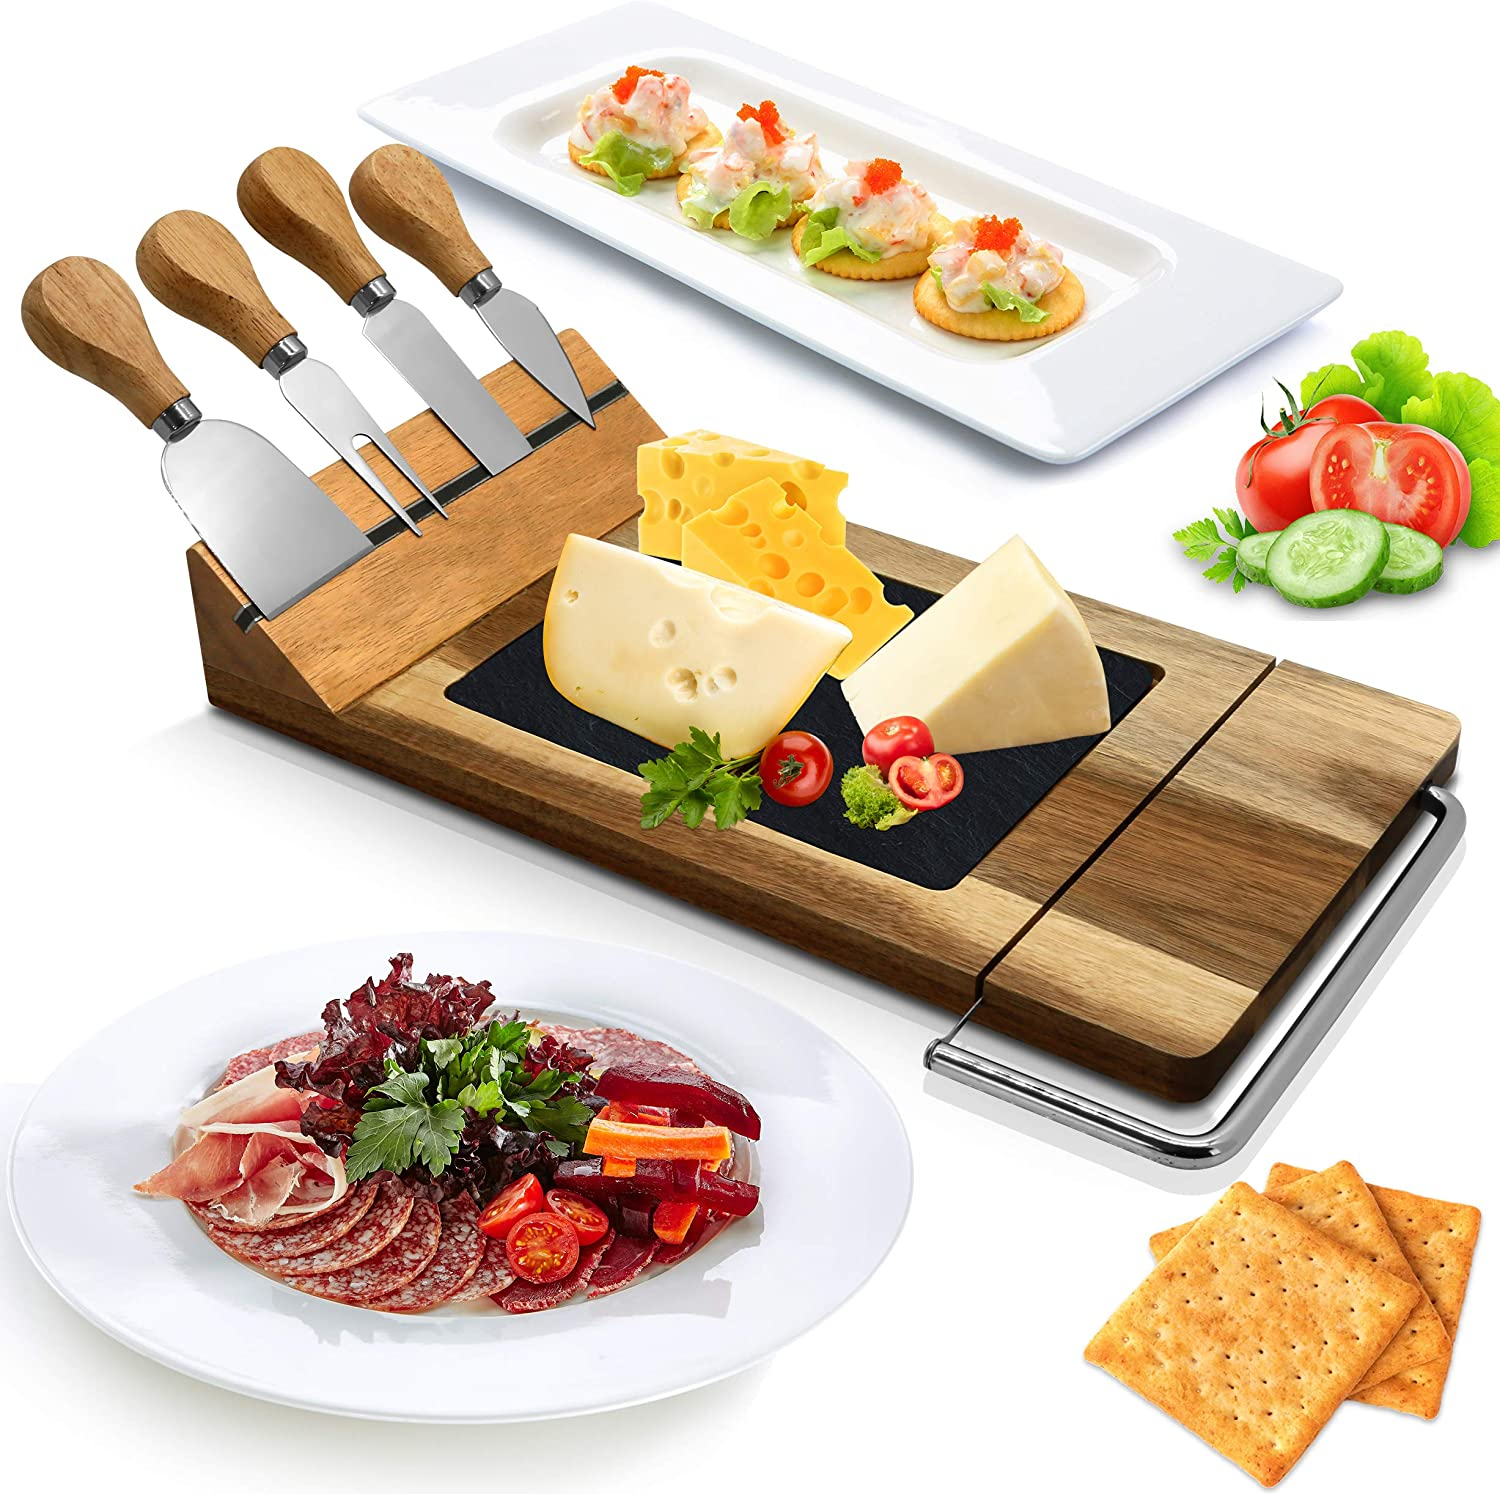 Nutrichef PKCZBD50 Bamboo Serving & Food Slicer Platter-Cheese Board Presentation Set with Built-in Slicing Blade, Slate Stone Slab, One Size, Brown